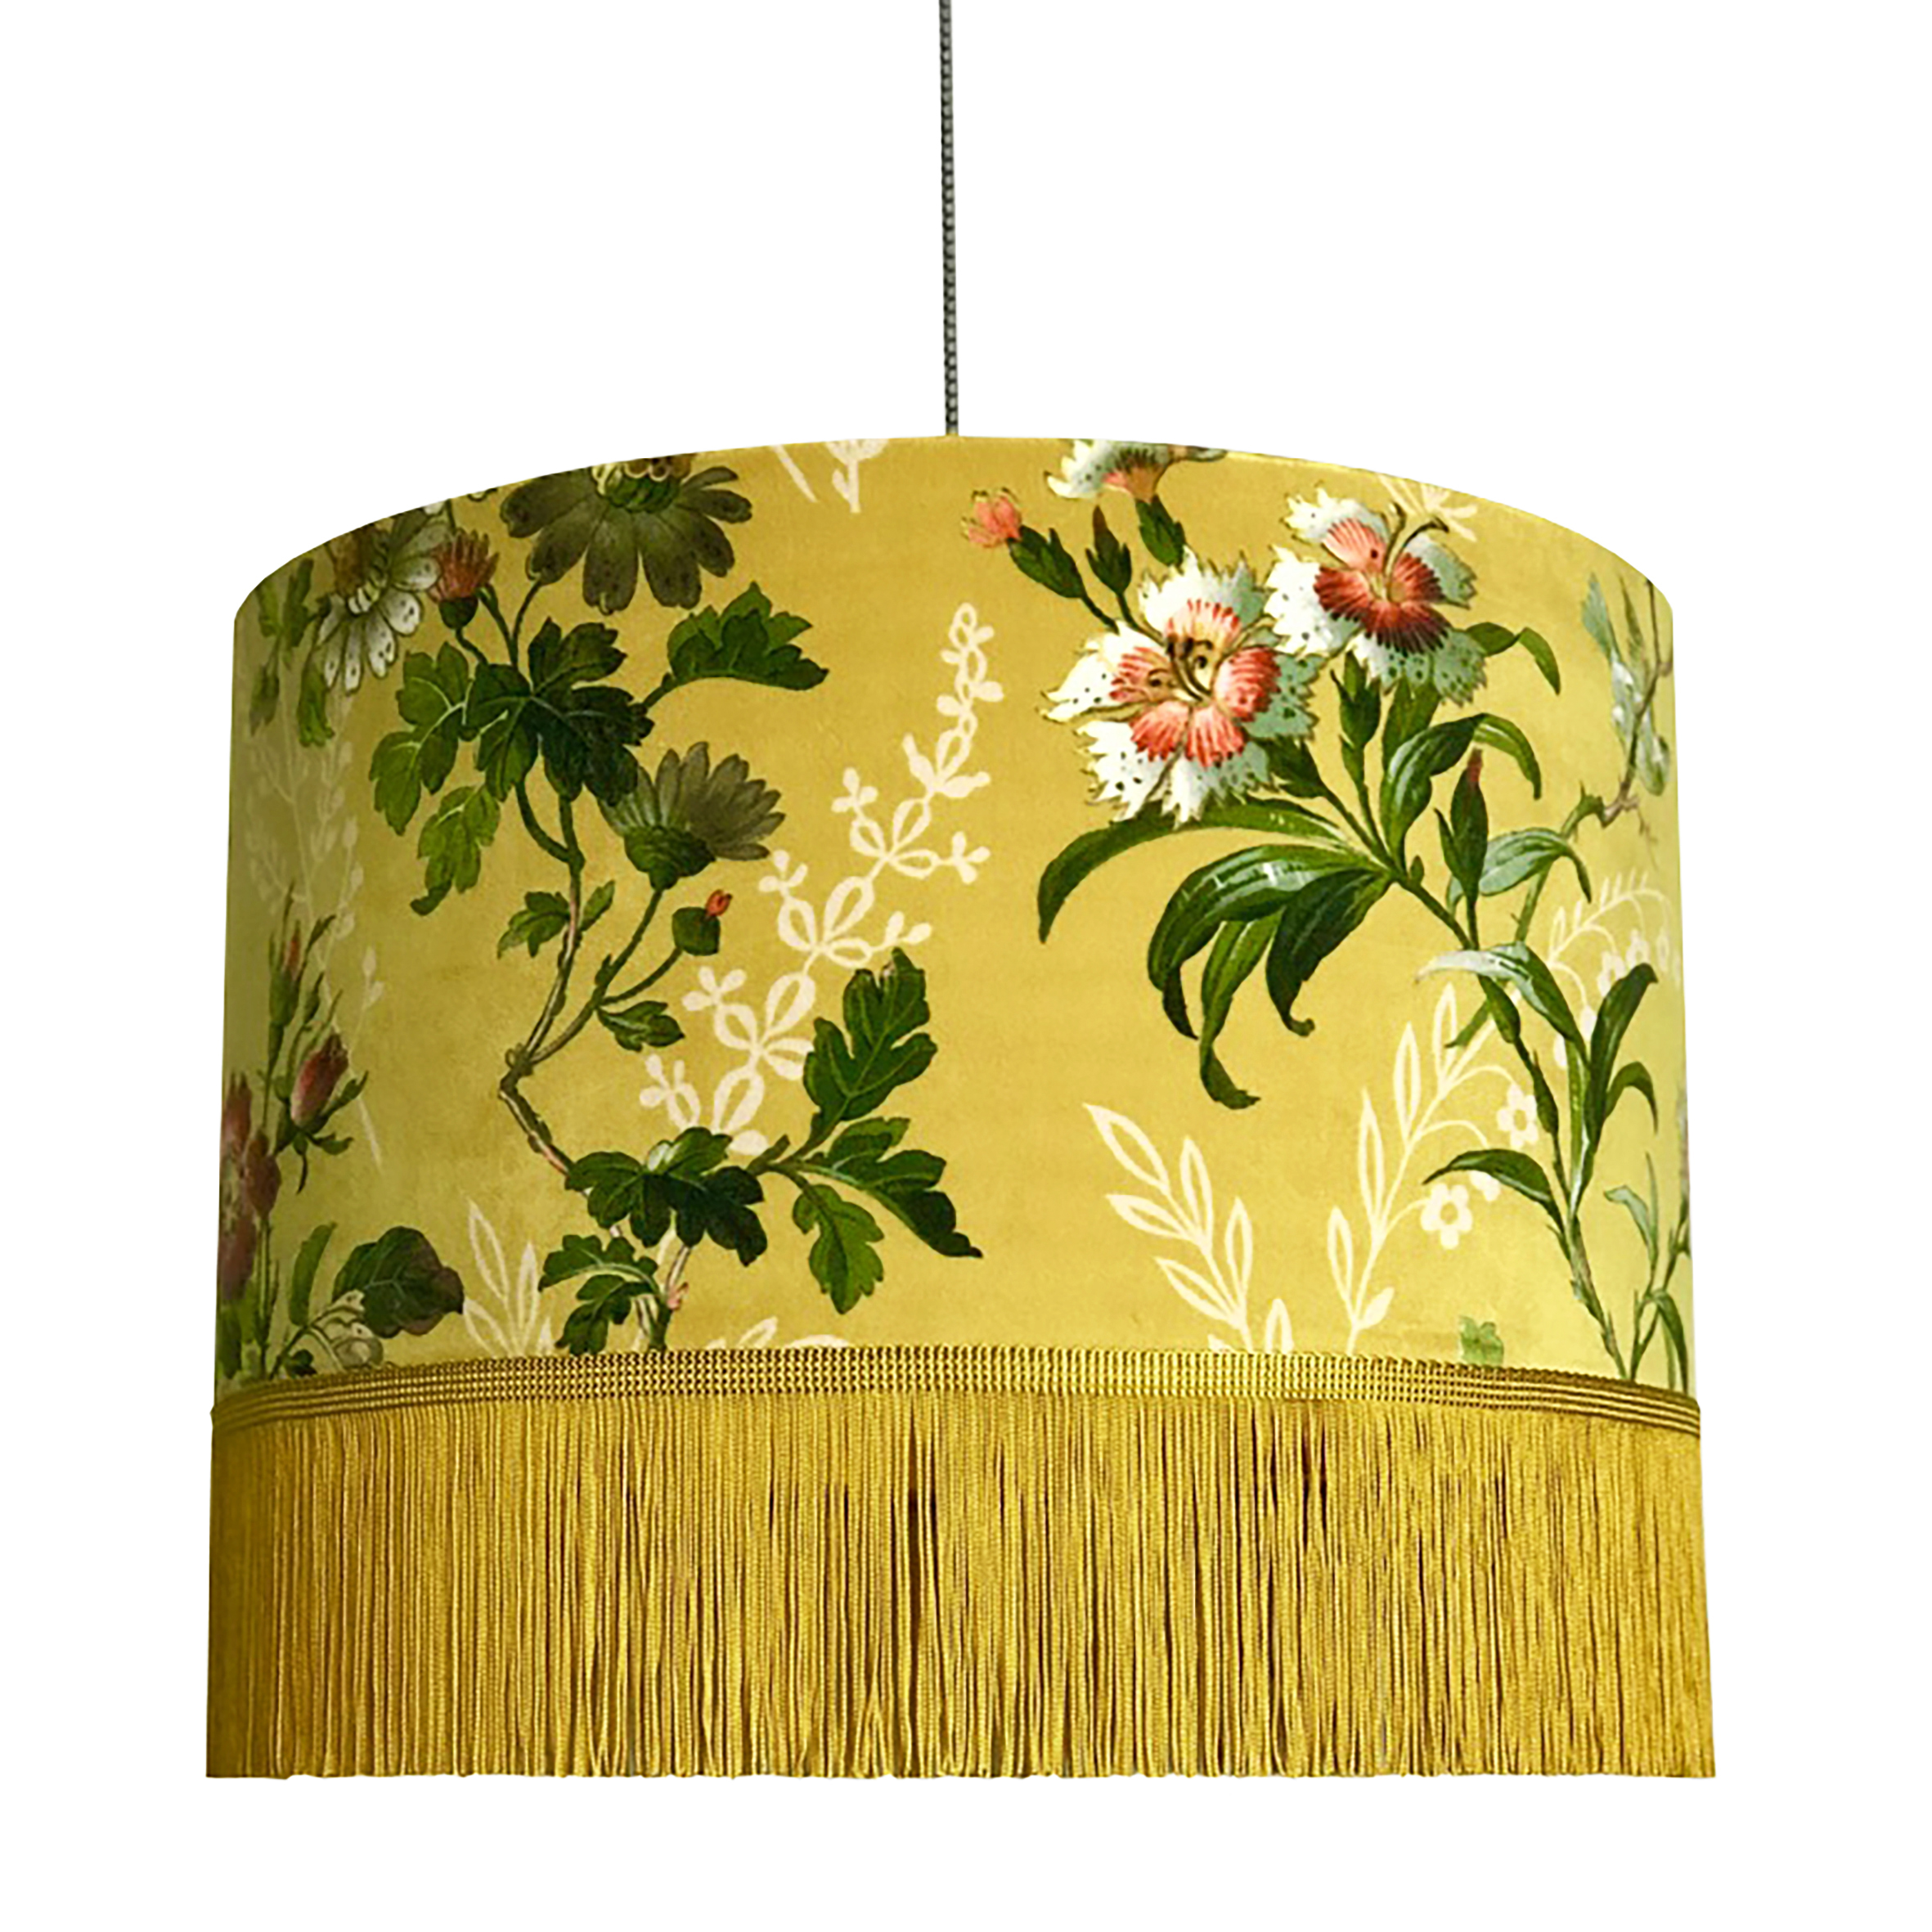 Floral Mustard Velvet Lampshade Part Of Our Flora X Fauna